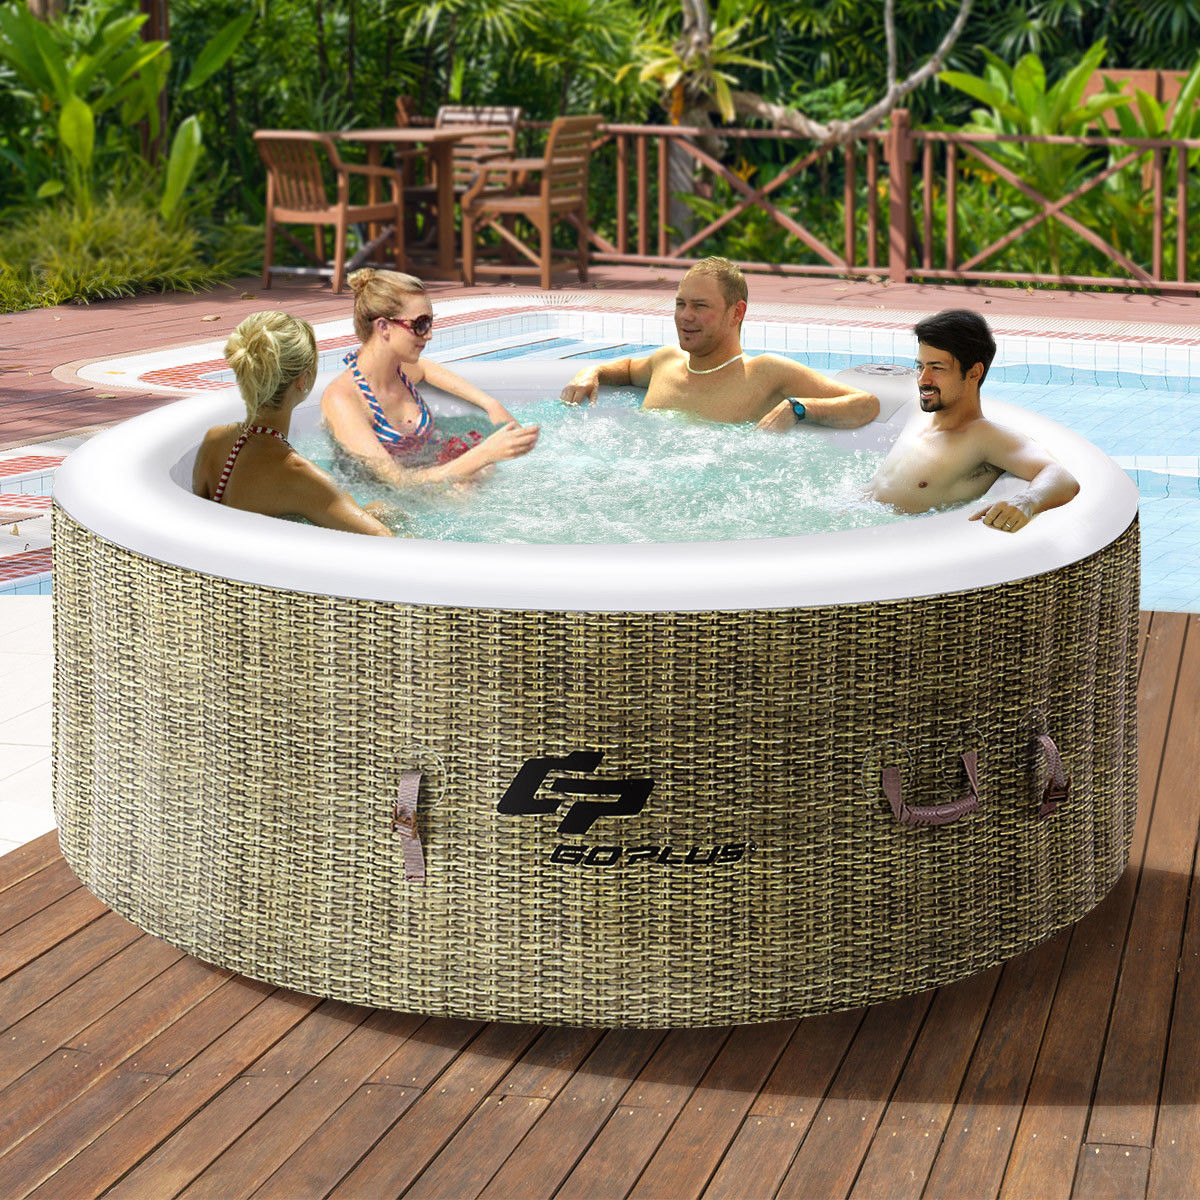 Goplus 4 Person Inflatable Hot Tub Outdoor Jets Portable Heated Bubble Massage Spa by Costway